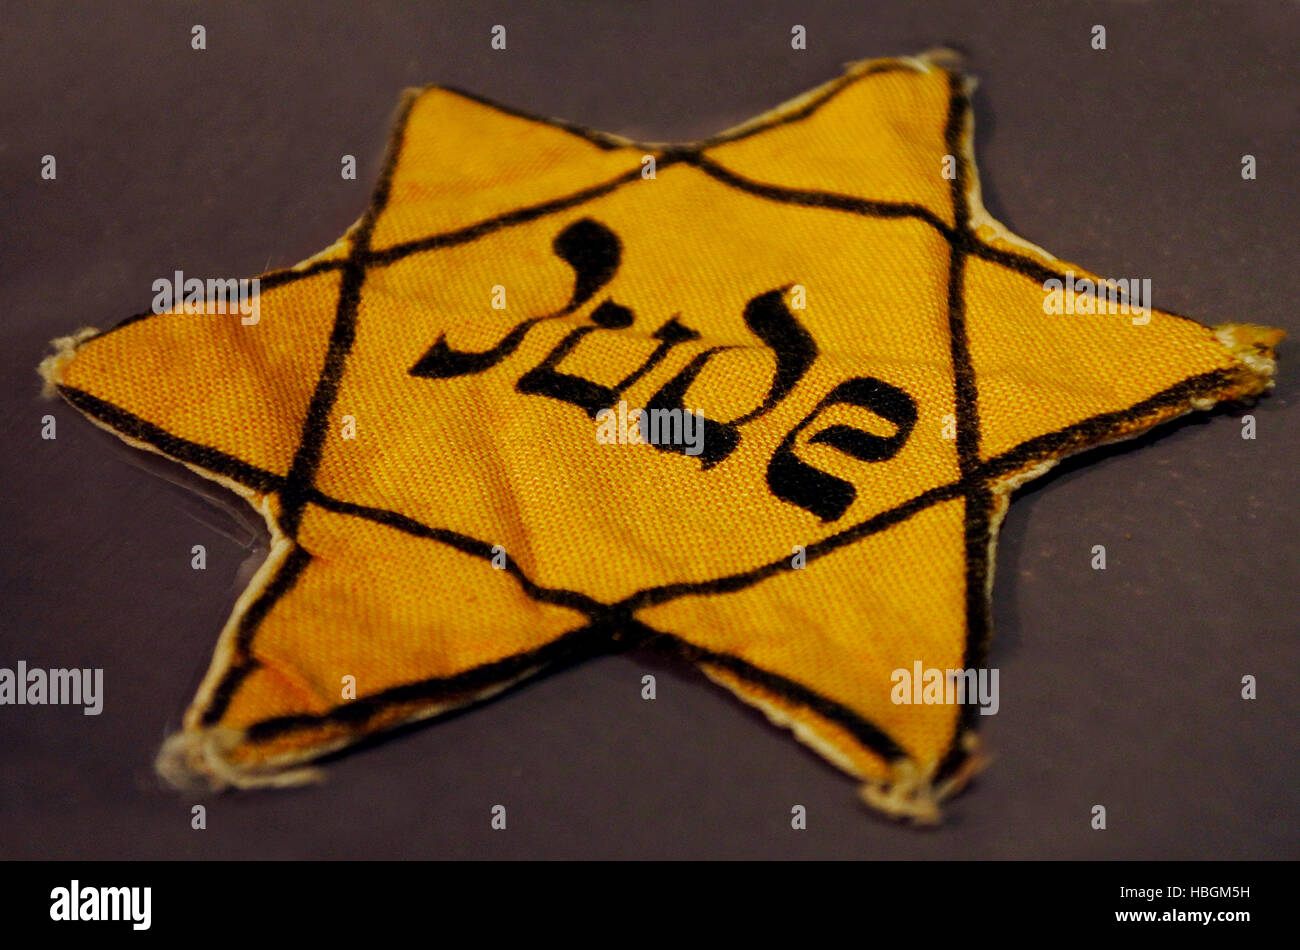 Yellow Jewish badge of shame. - Stock Image